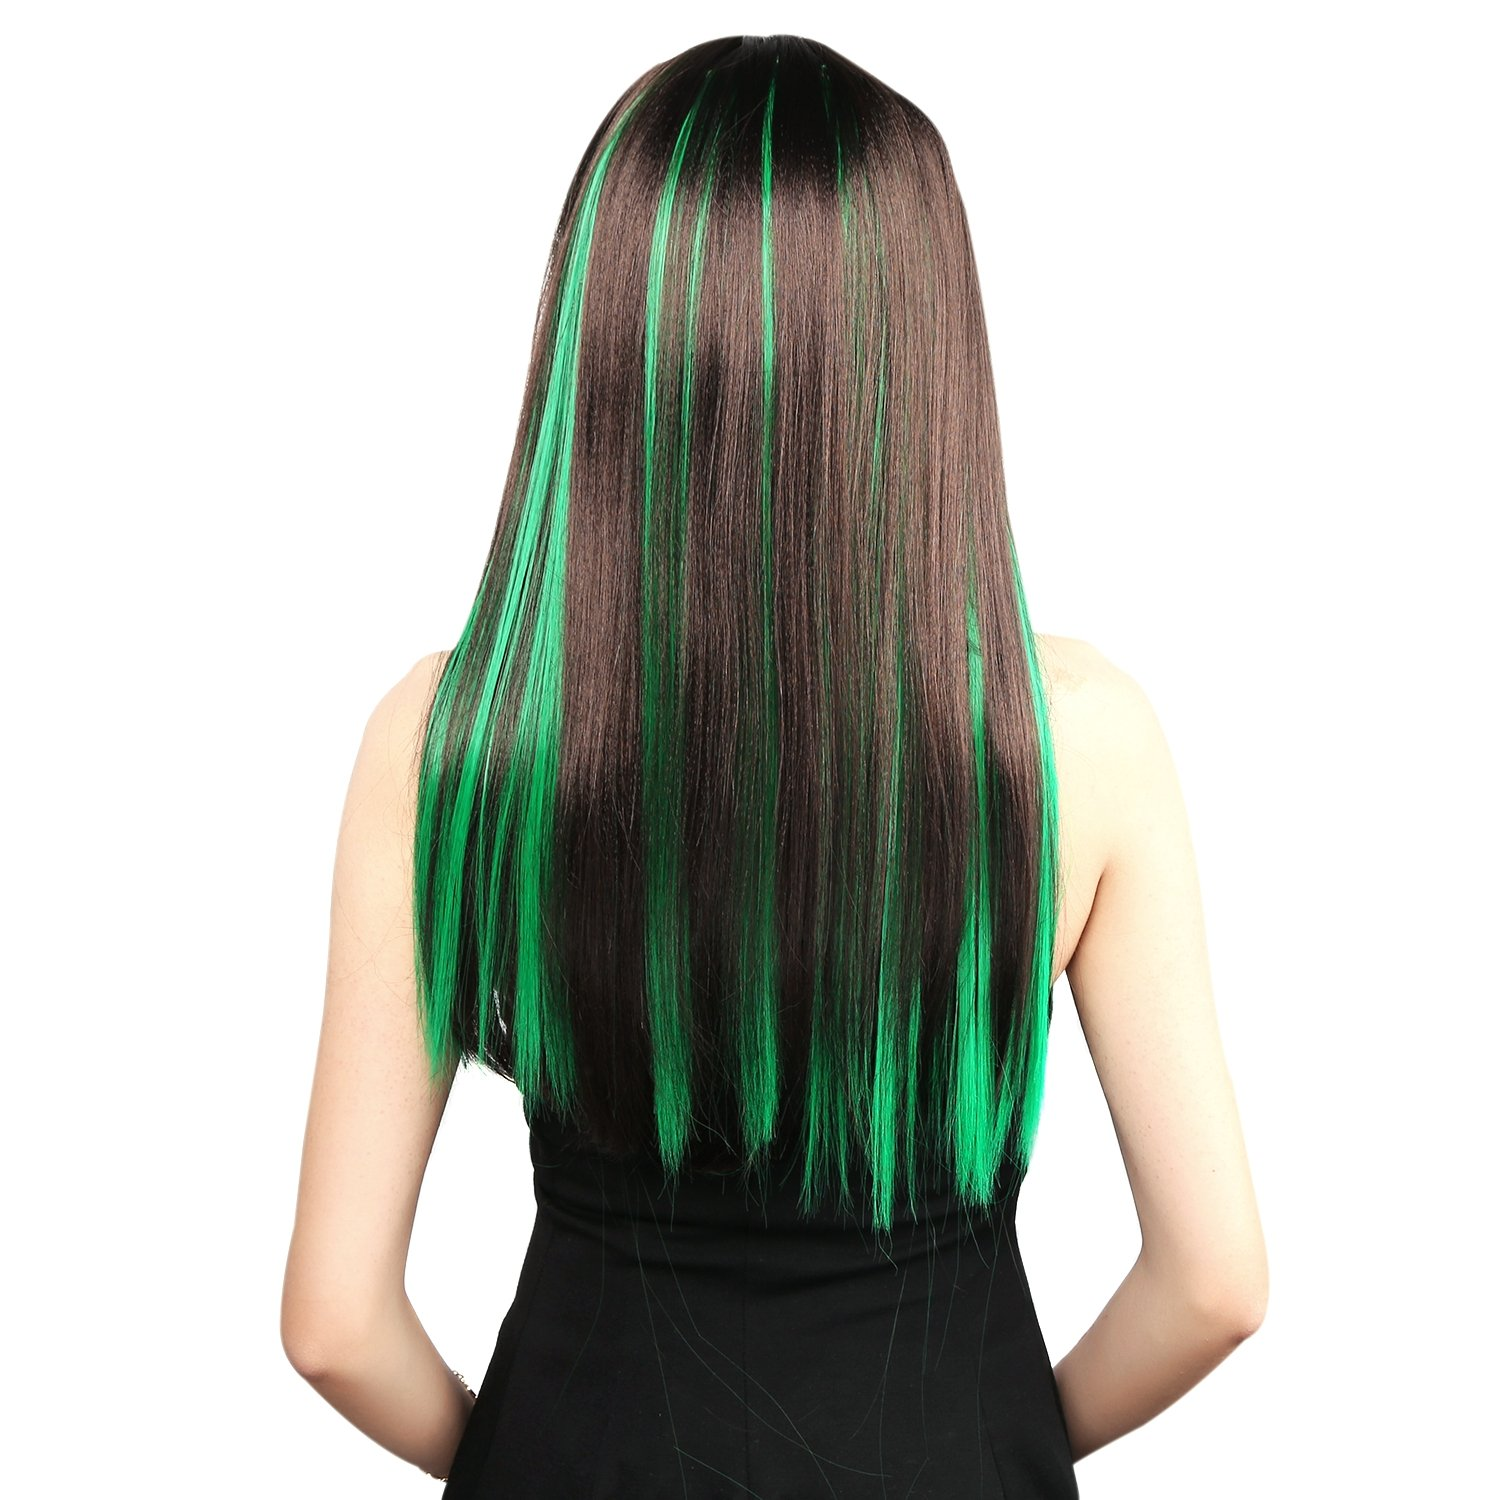 Neitsi 10pcs 18inch Colored Highlight Synthetic Clip on in Hair Extensions #F13 Green by Neitsi